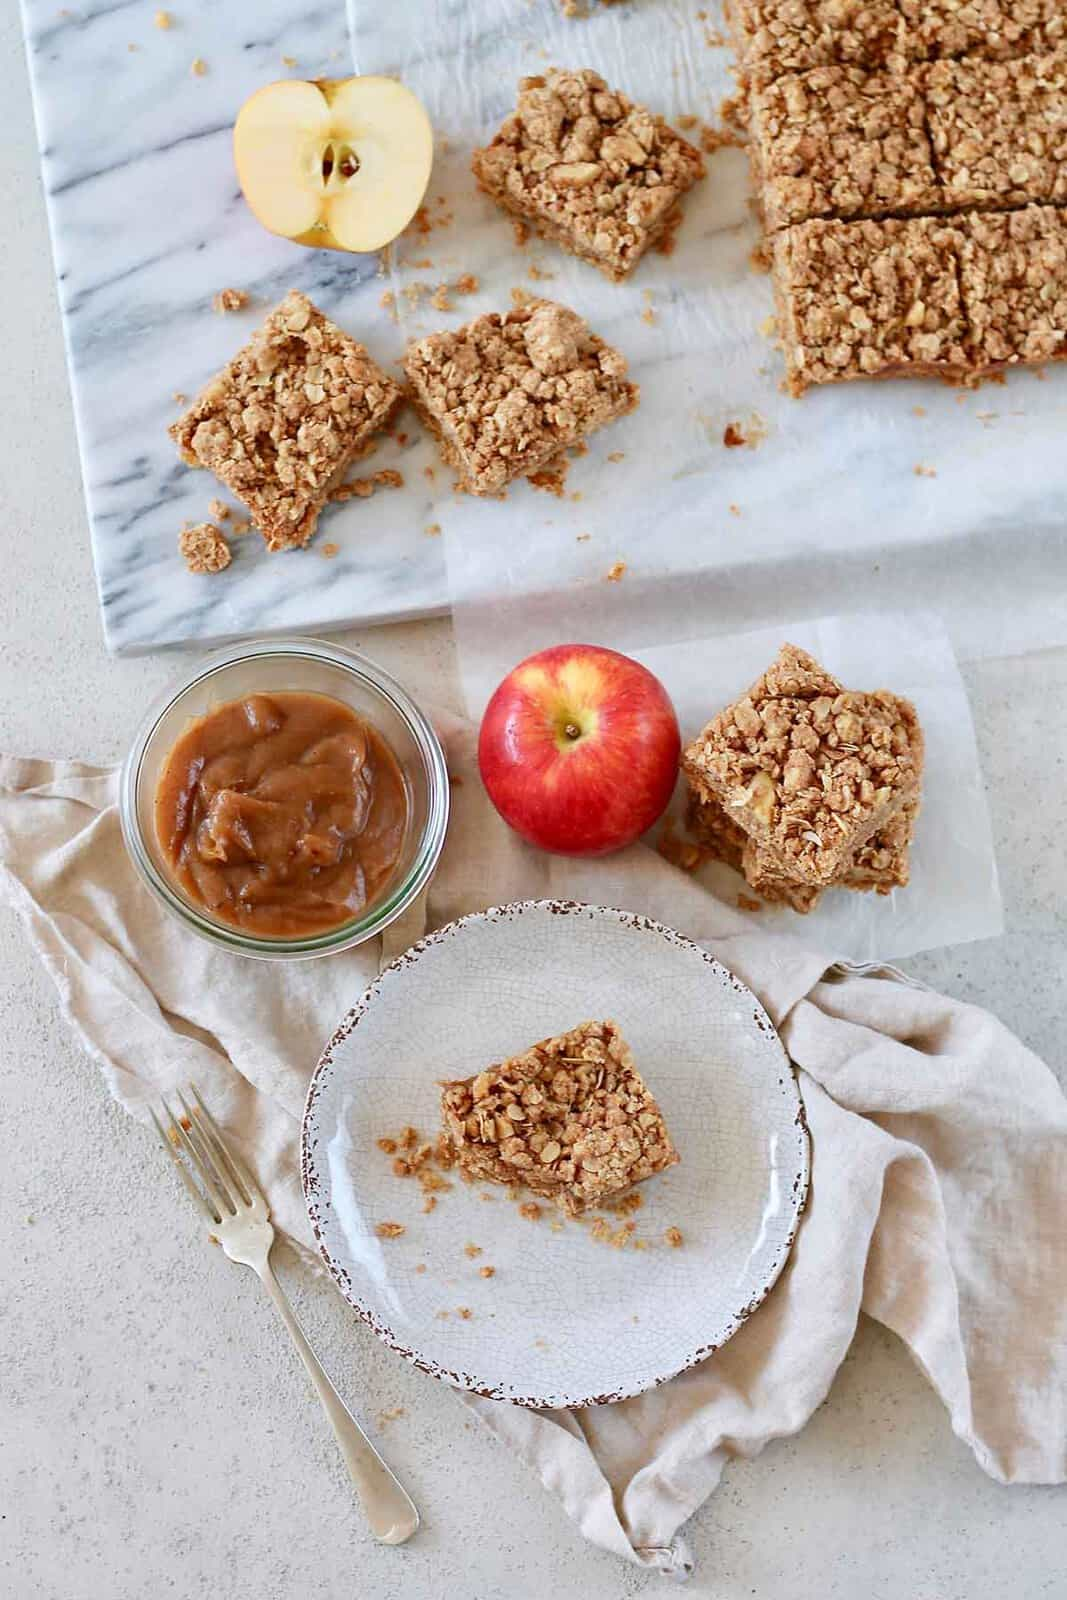 apple crumble bars on a marble surfafce with apples and apple butter